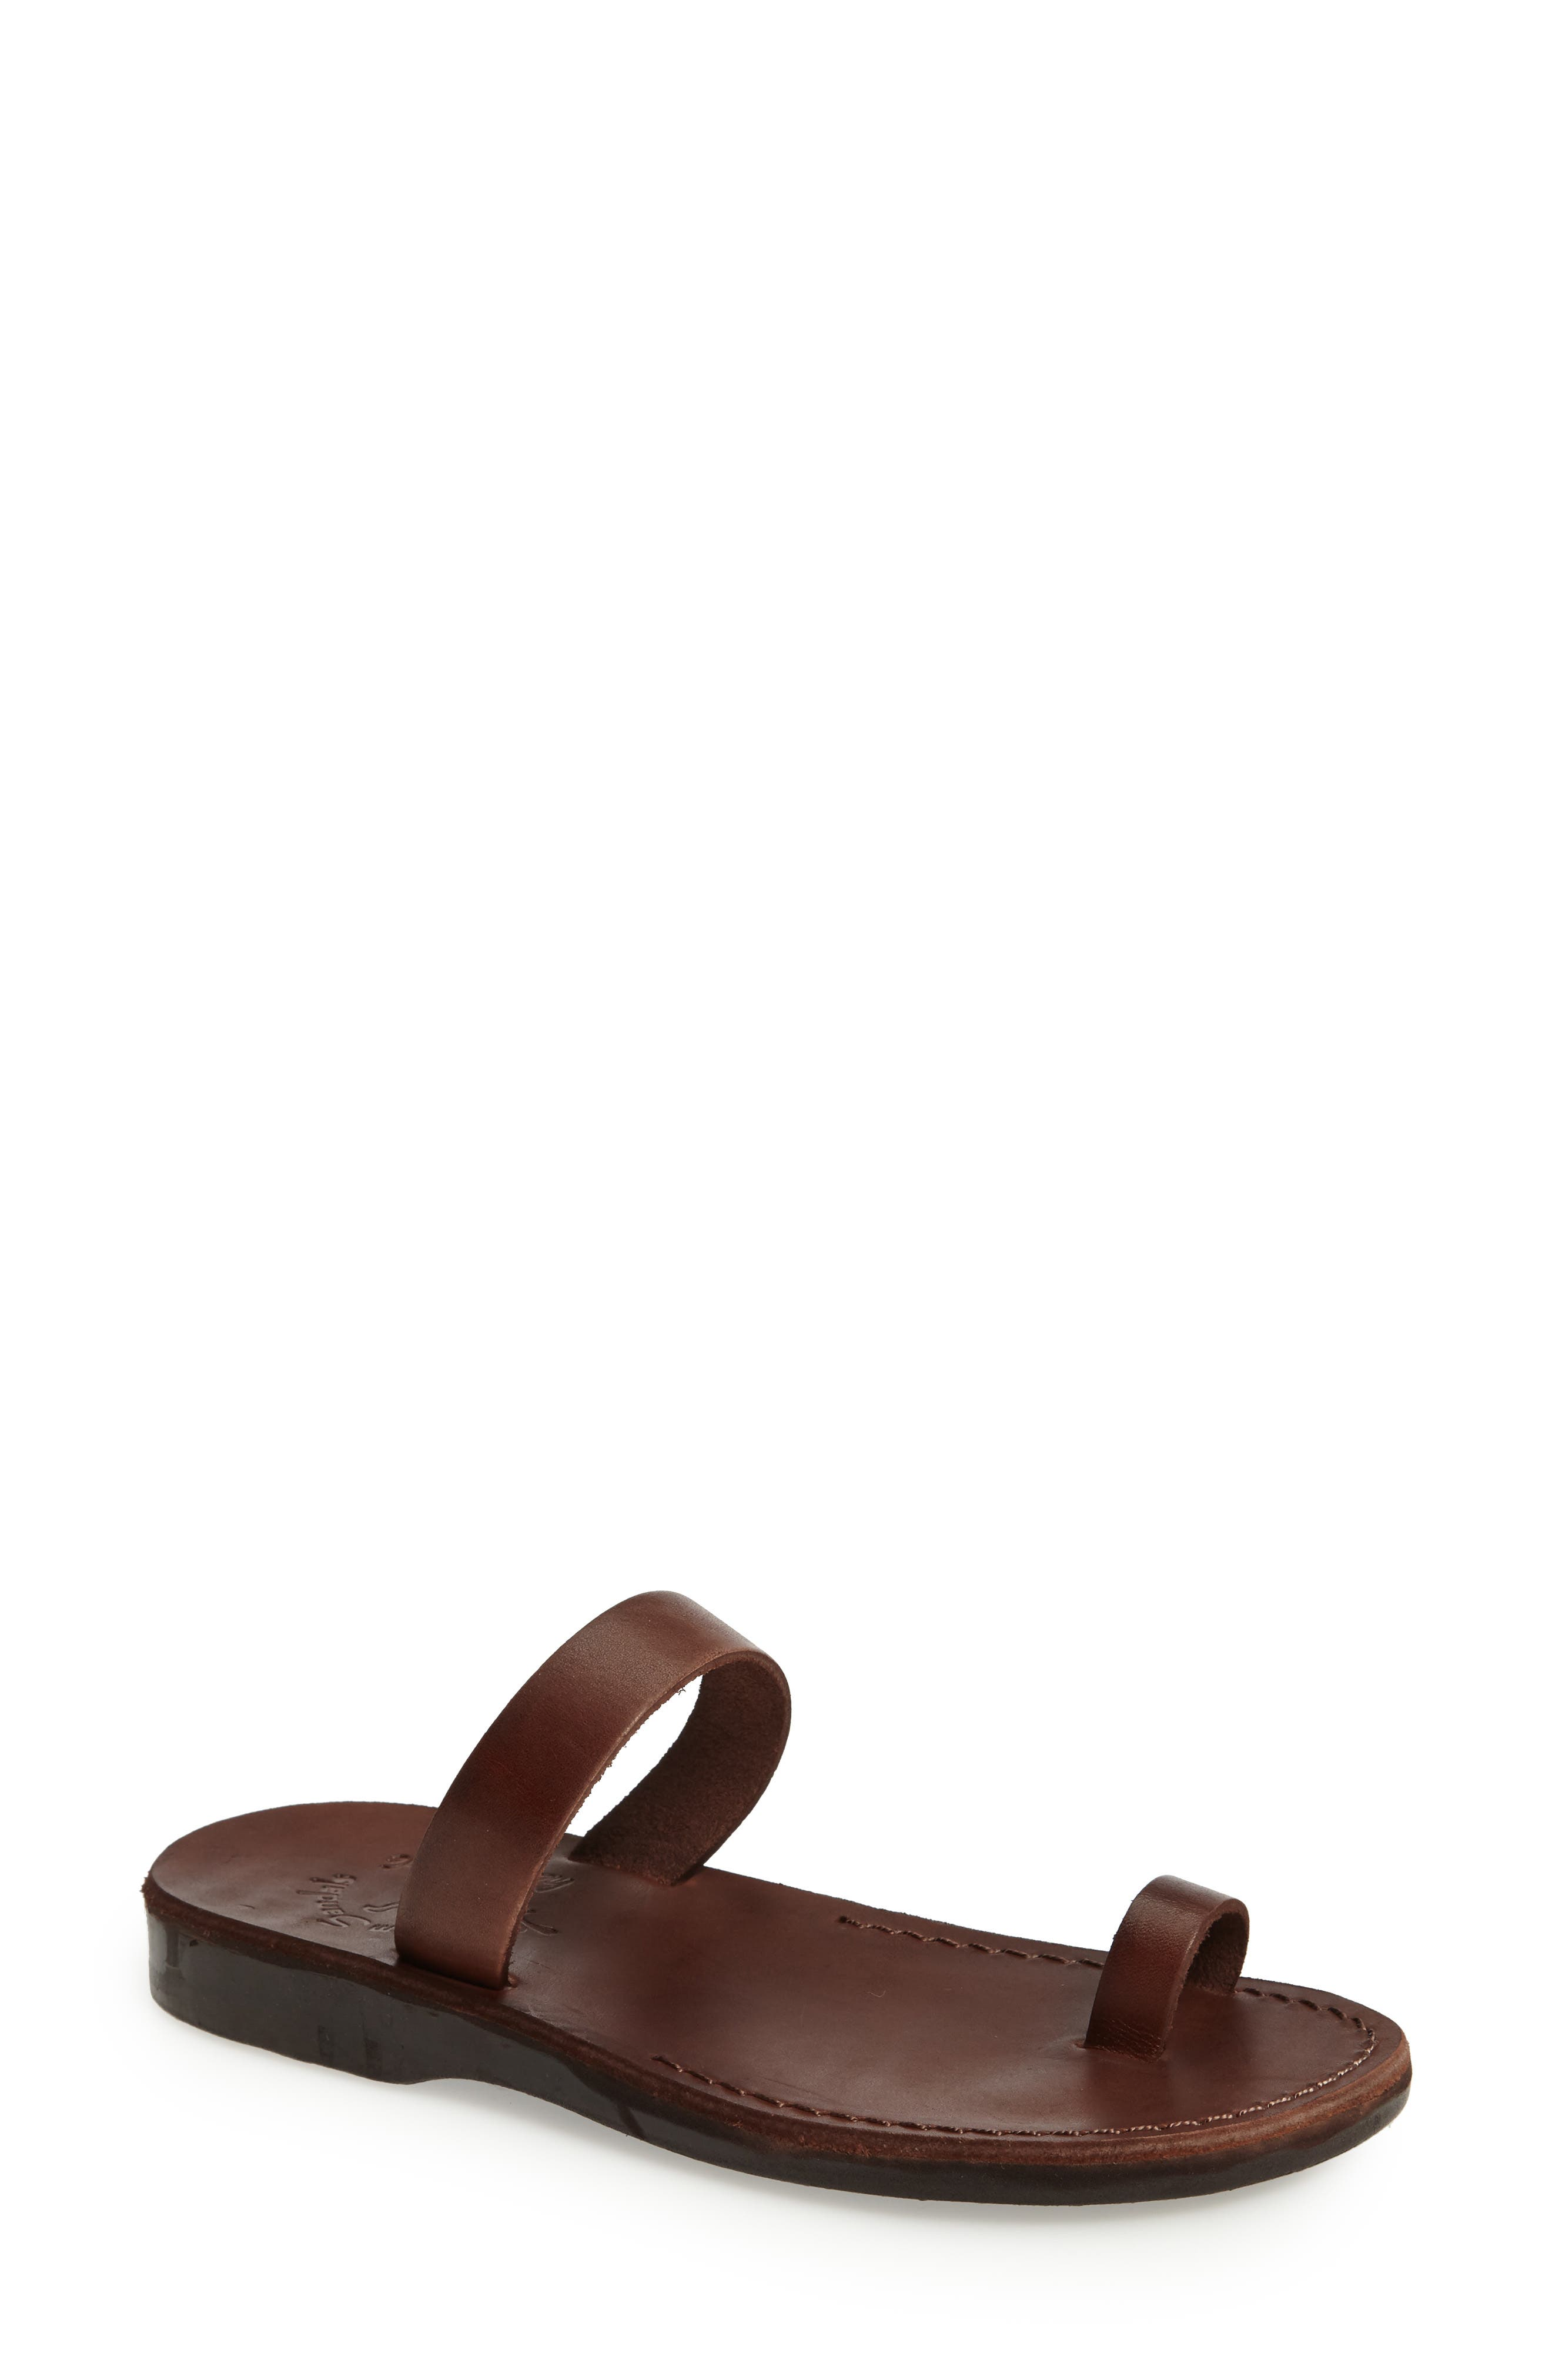 Eden Toe Loop Sandal,                             Main thumbnail 1, color,                             BROWN LEATHER